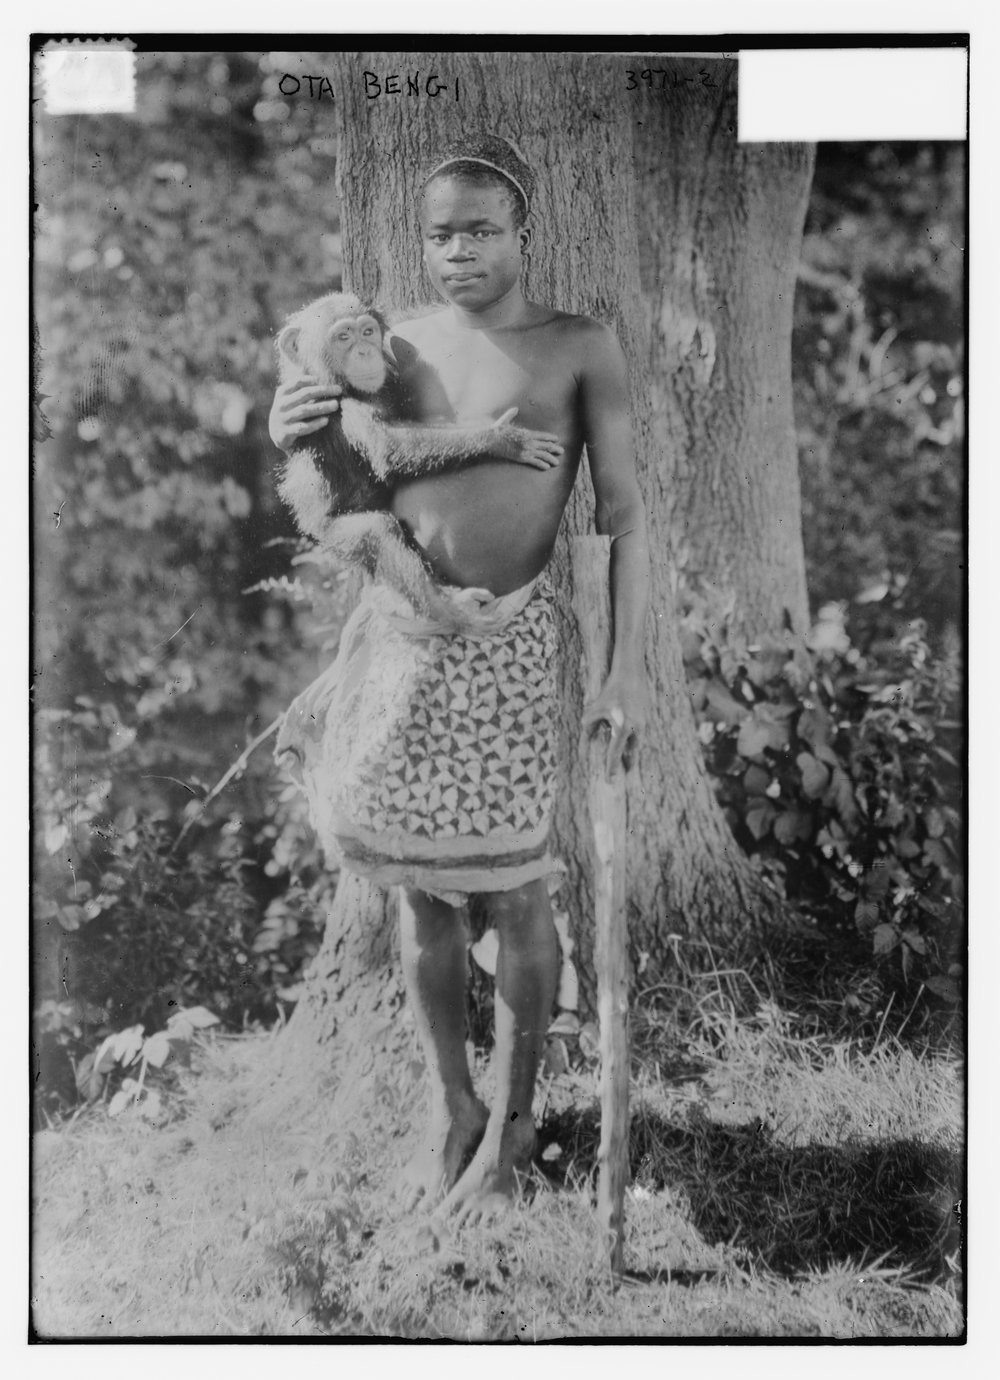 Ota Benga  he lived with faculty from the Virginia Seminary and College (now Virginia University of Lynchburg) and used to hunt in the woods nearby. One of Ota's hunting companions was Chauncey Spencer, son of poet and librarian Anne Spencer.